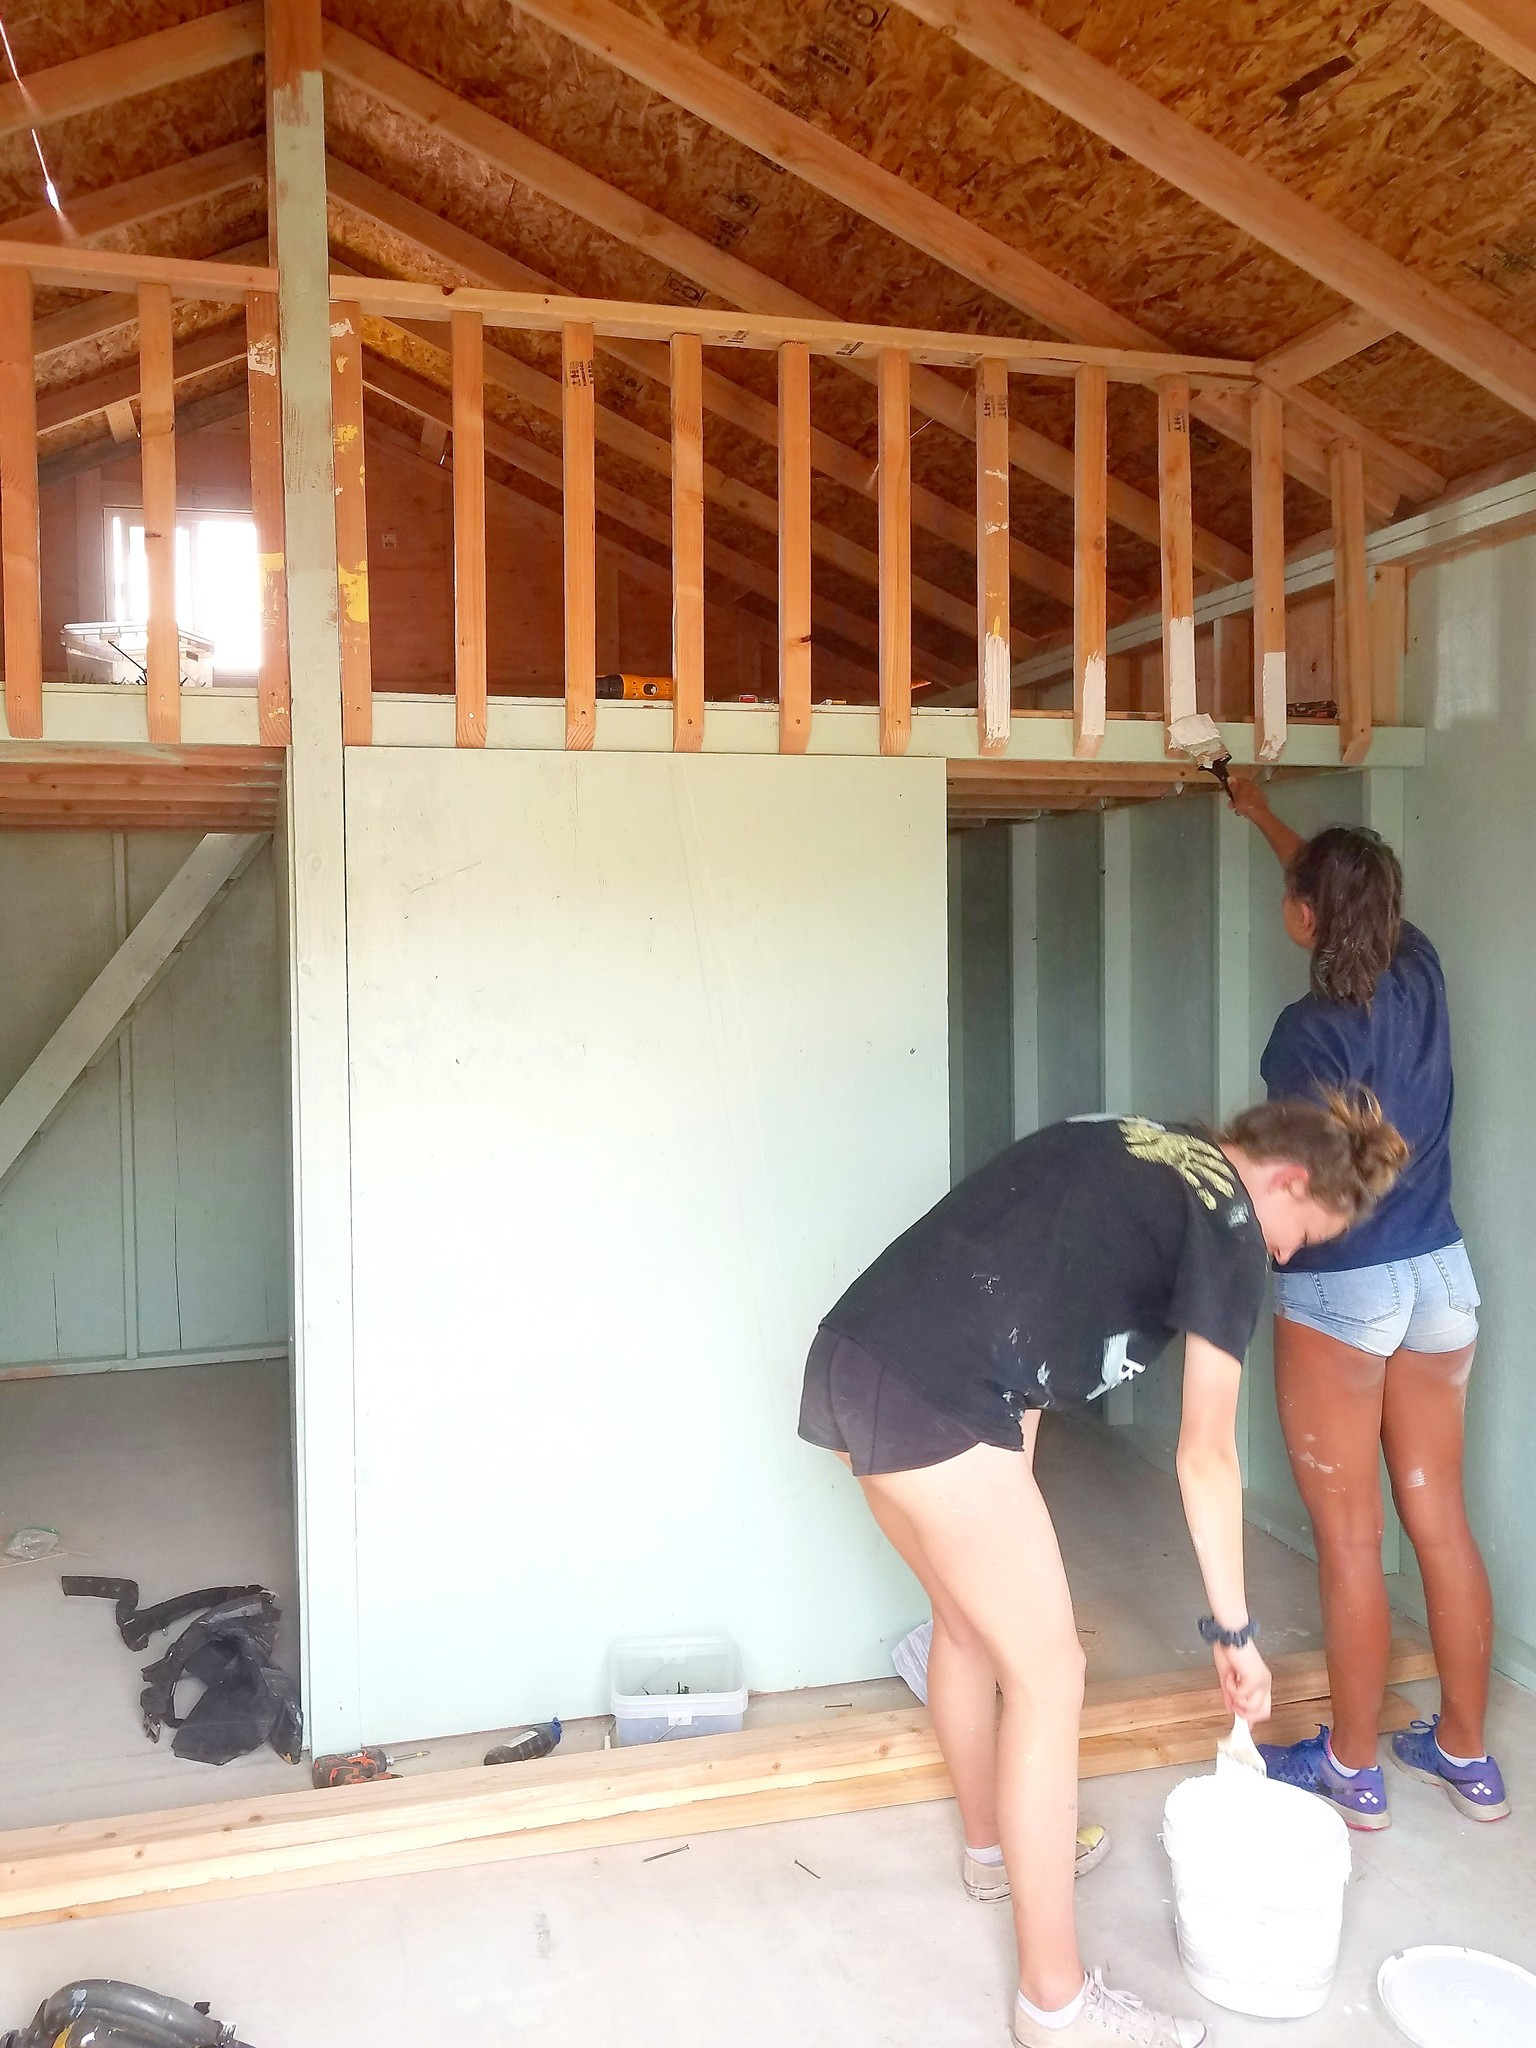 La Jolla High students paint the interior of a house.